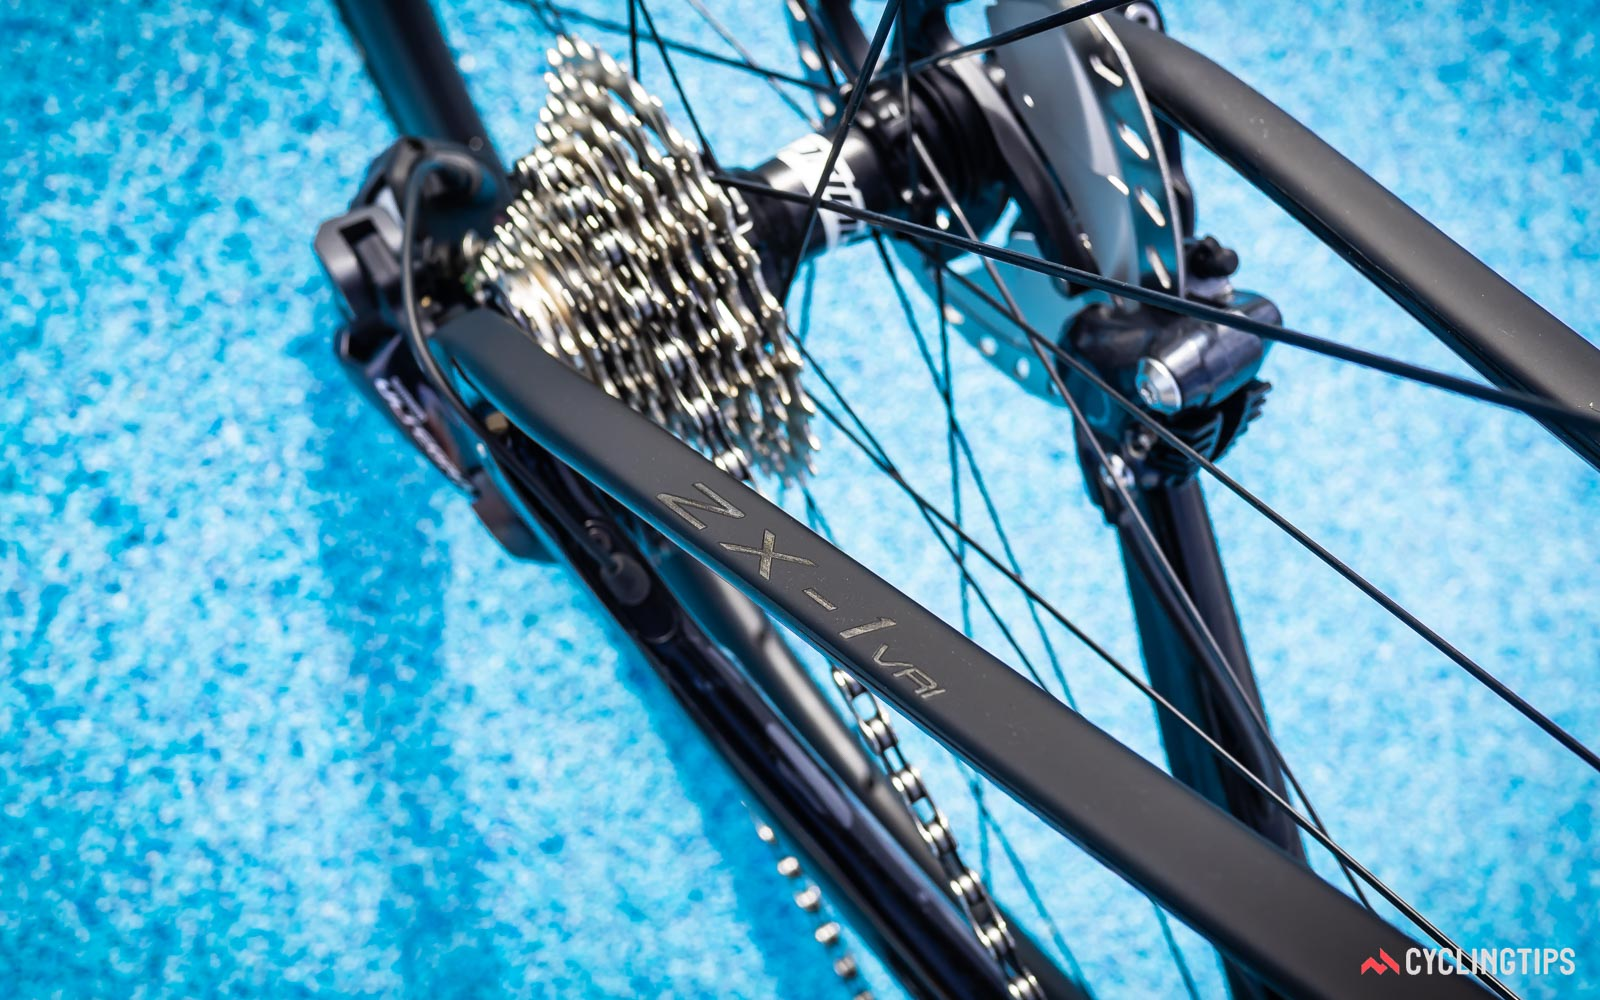 Vitus ZX-1 CR1 seat stay and cassette